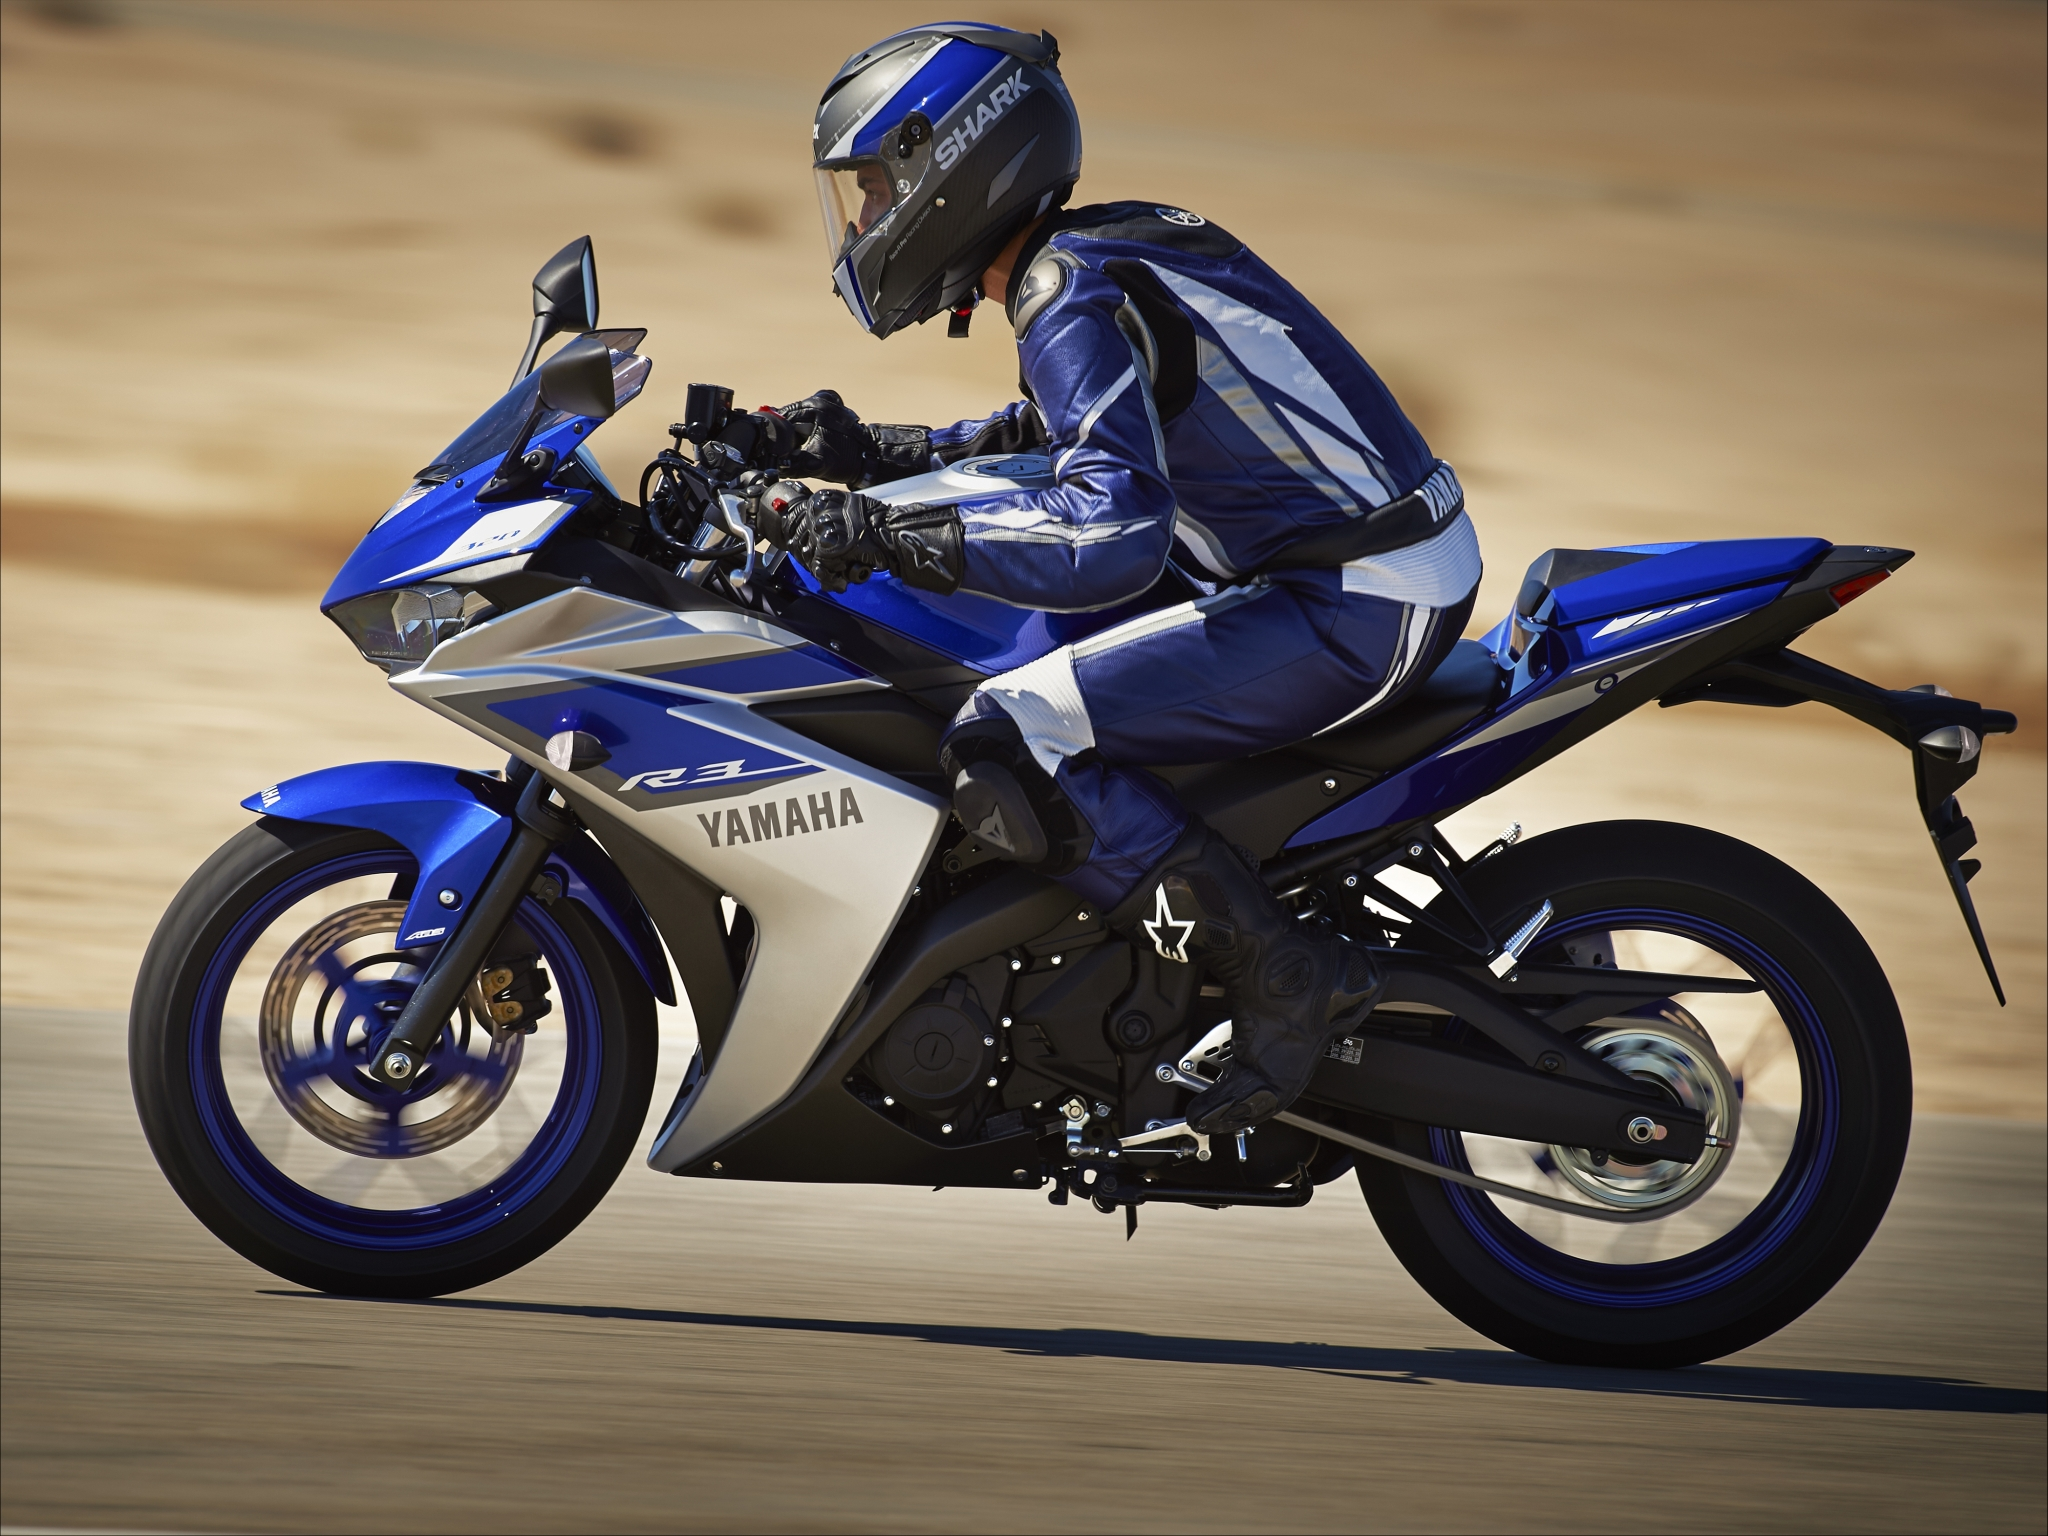 2015 Yamaha YZF-R3 First Official Pictures Show a Future Winner ...